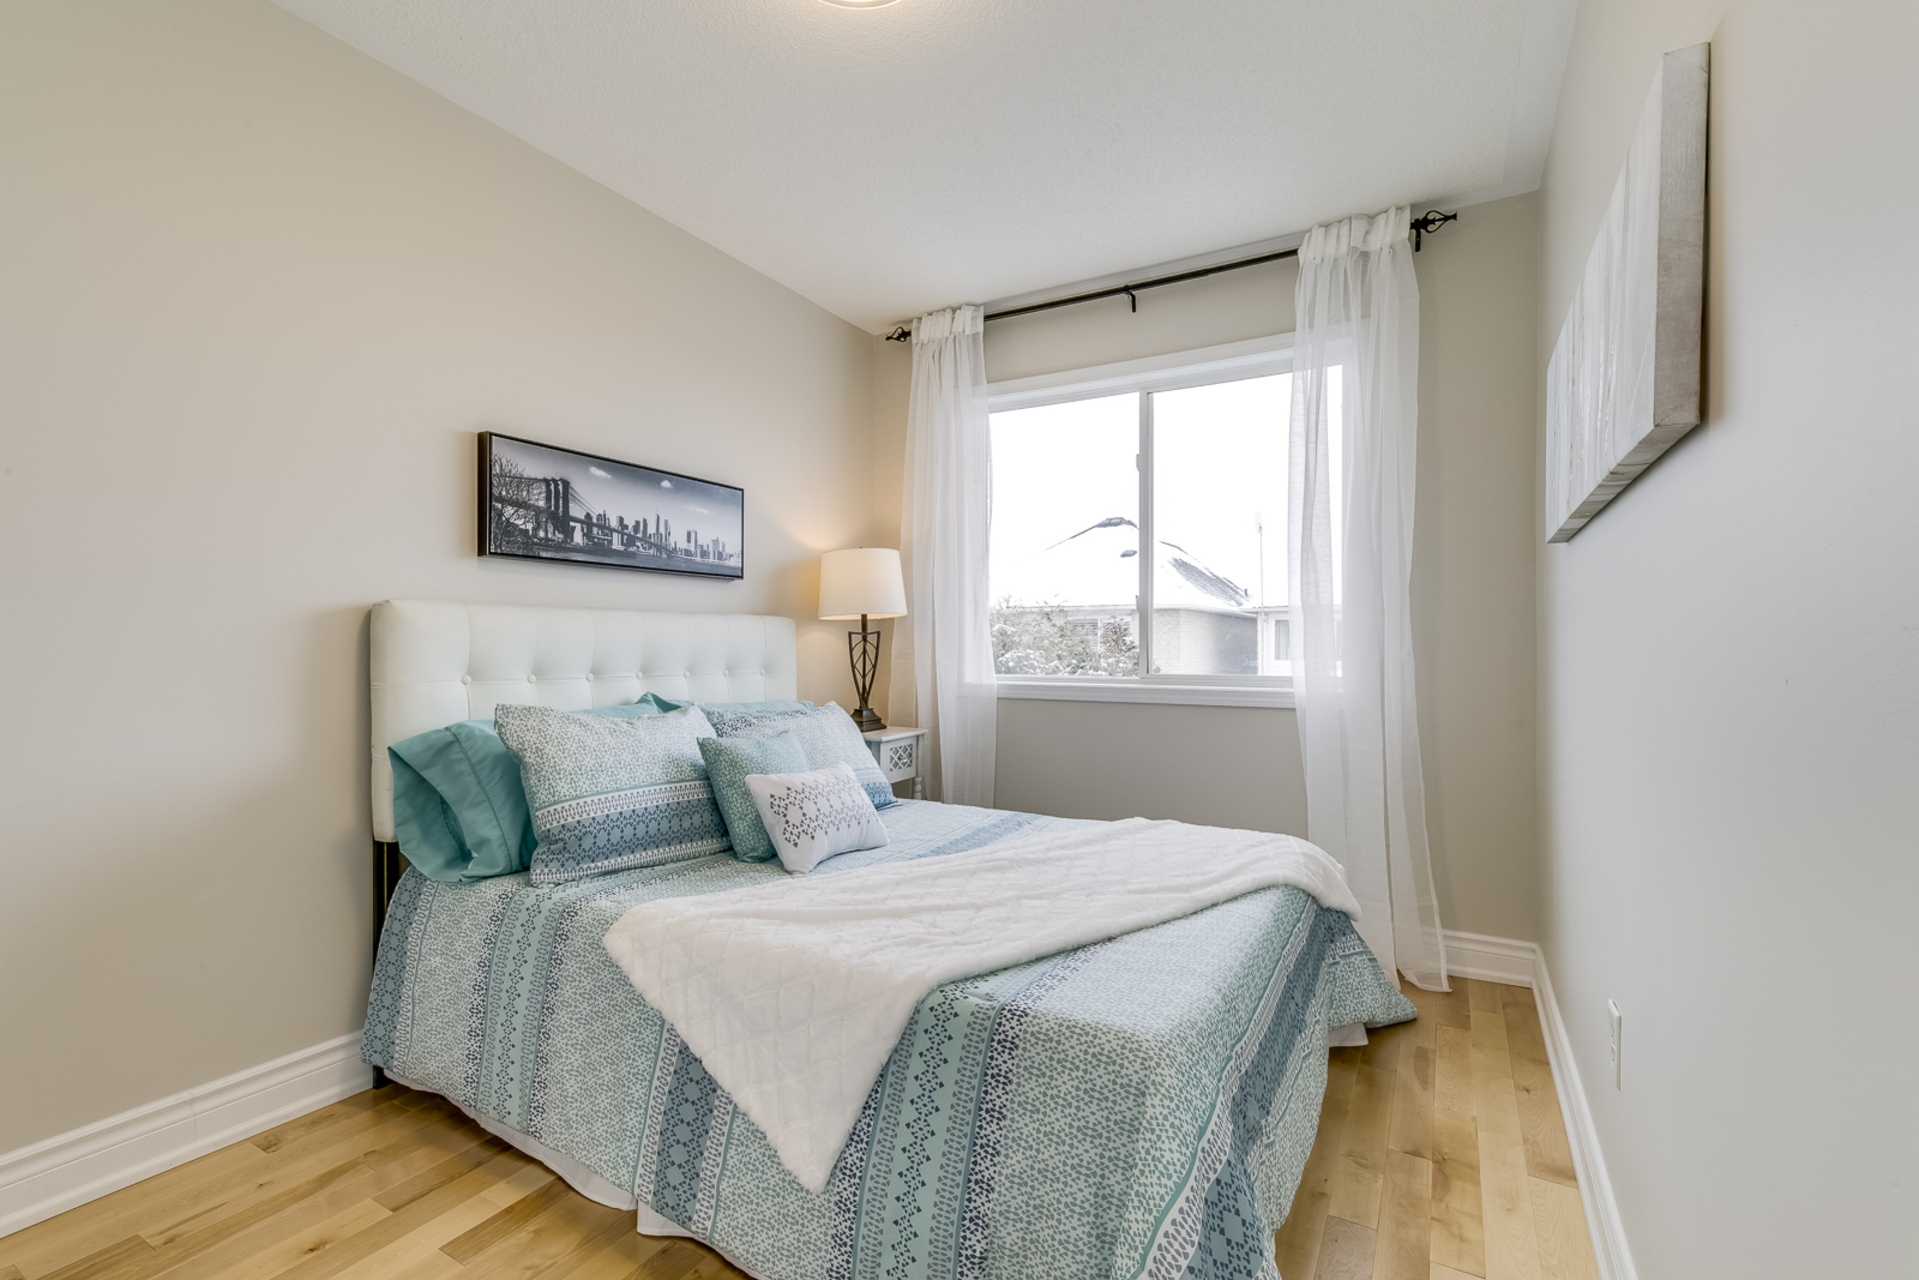 2nd Bedroom - 1342 Weir Chase, Mississauga - Elite3 & Team at 1342 Weir Chase, East Credit, Mississauga